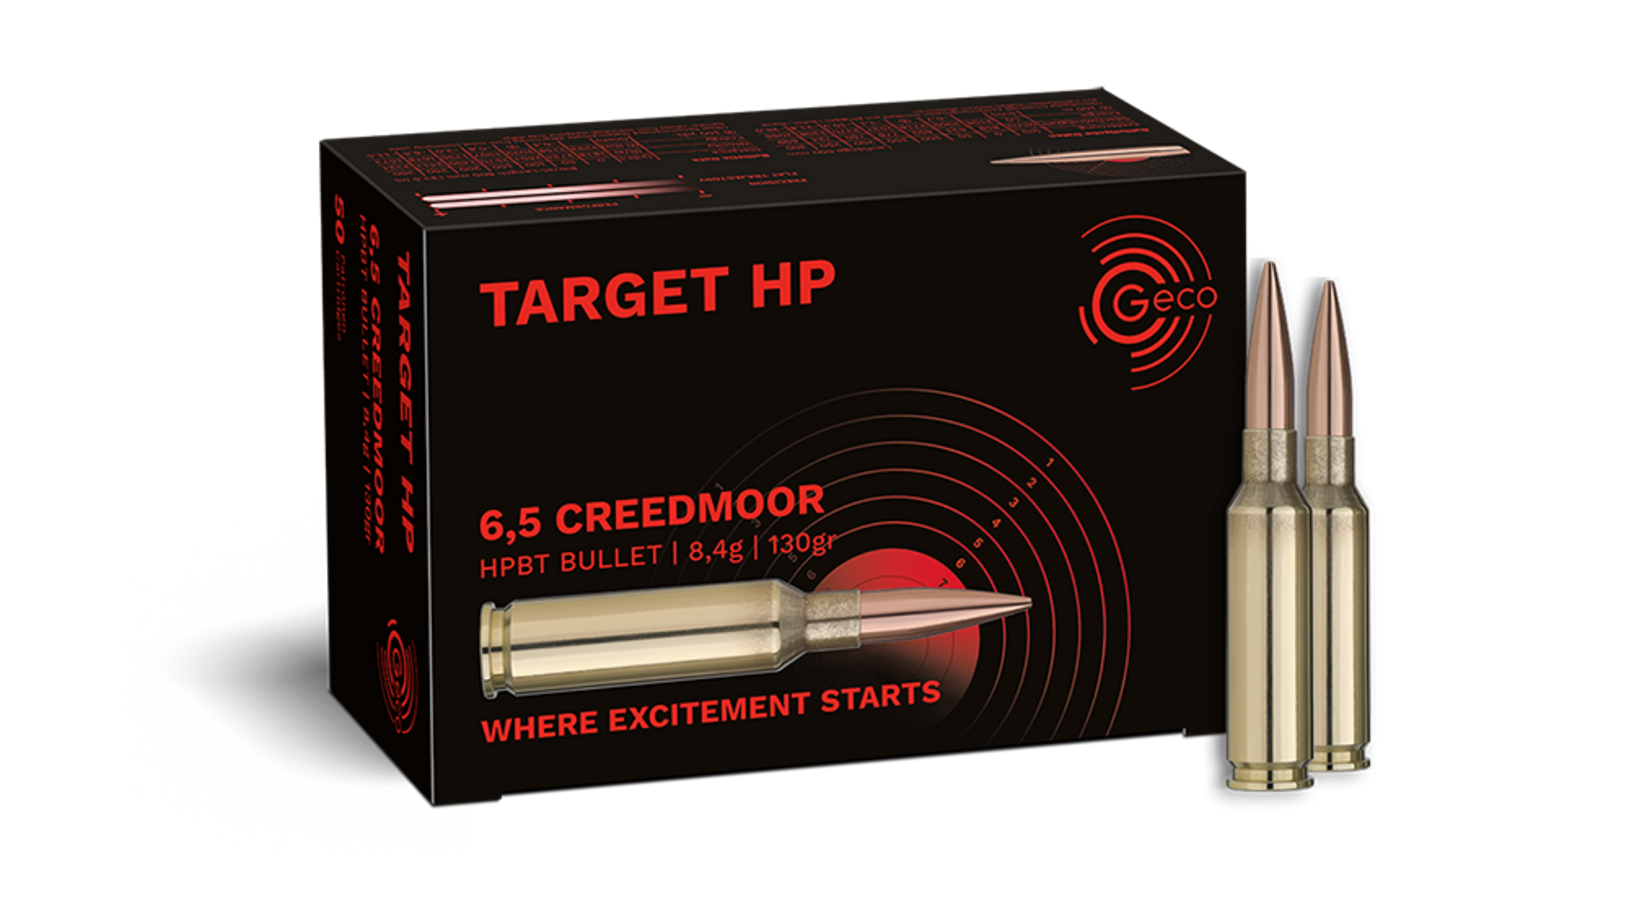 Frontview of ammunition and packaging of GECO 6,5 Creedmoor TARGET HP 8,4g